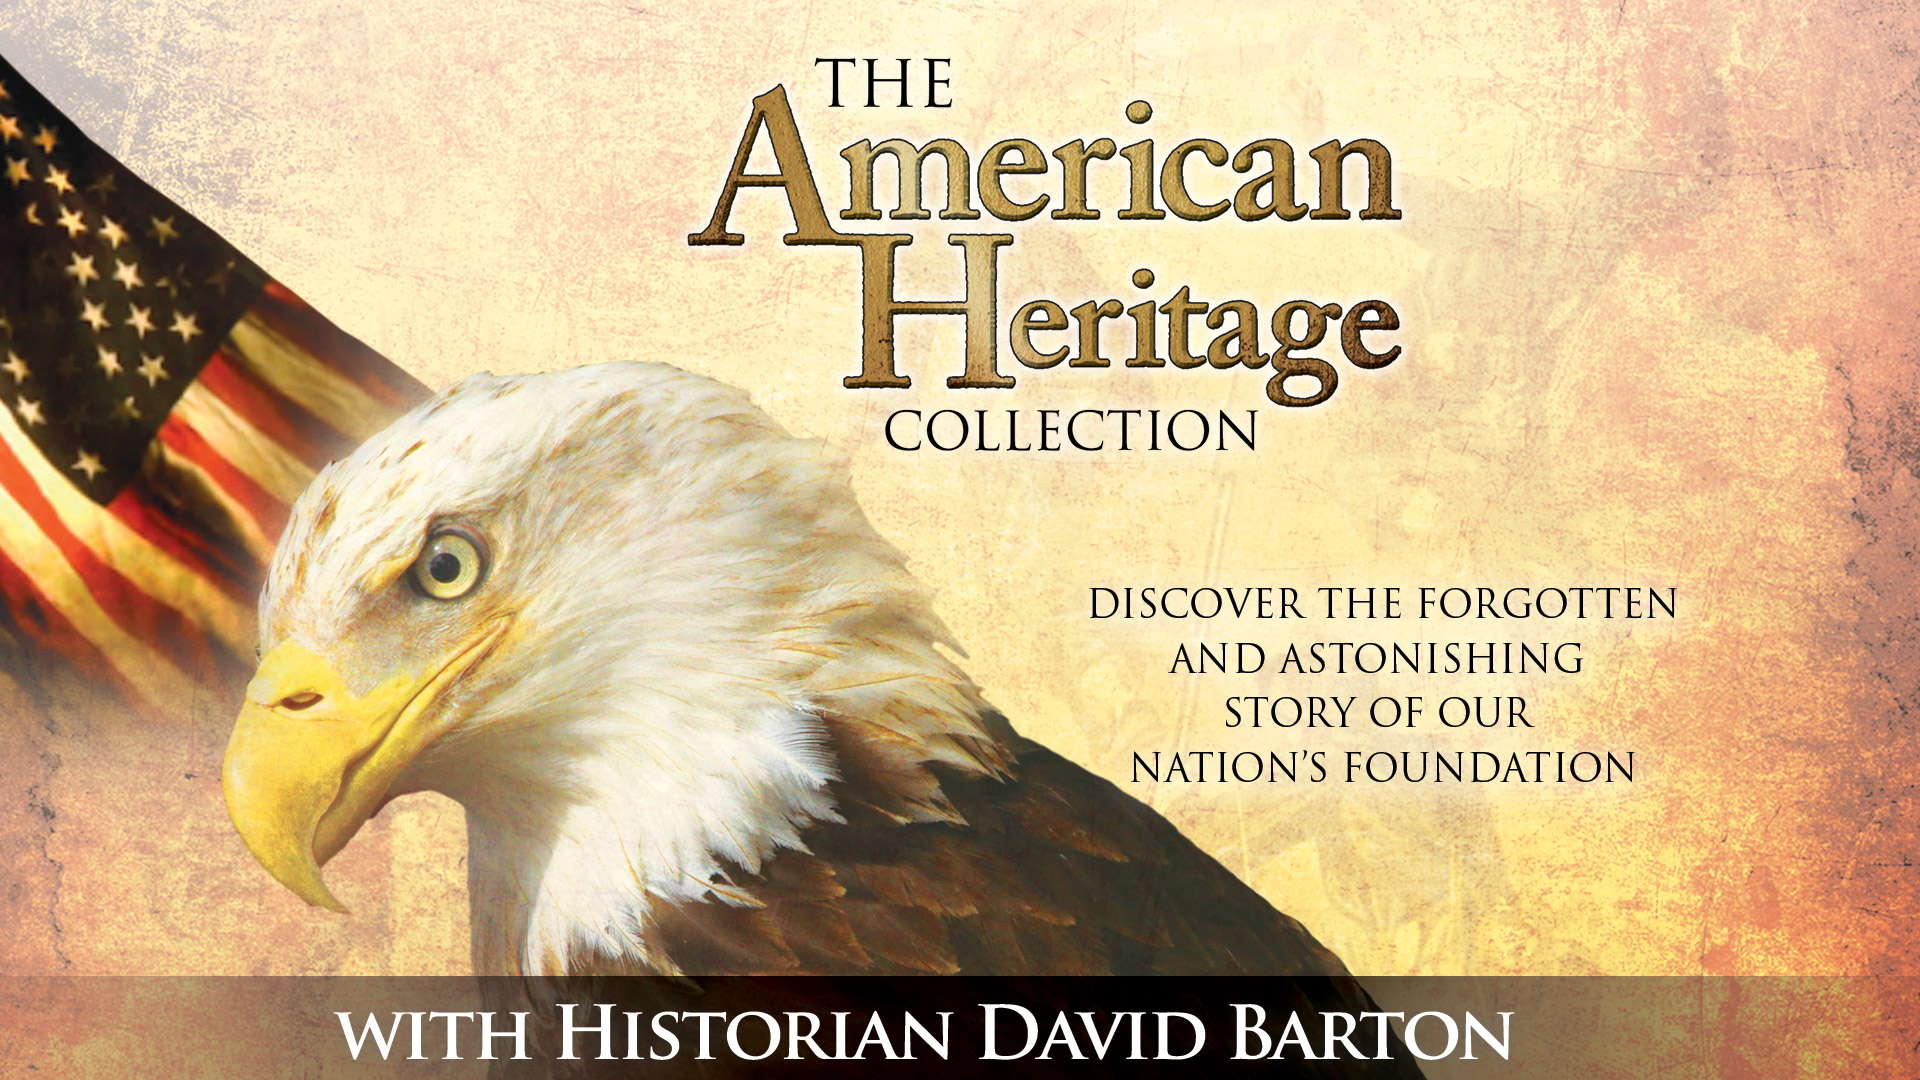 The American Heritage Collection